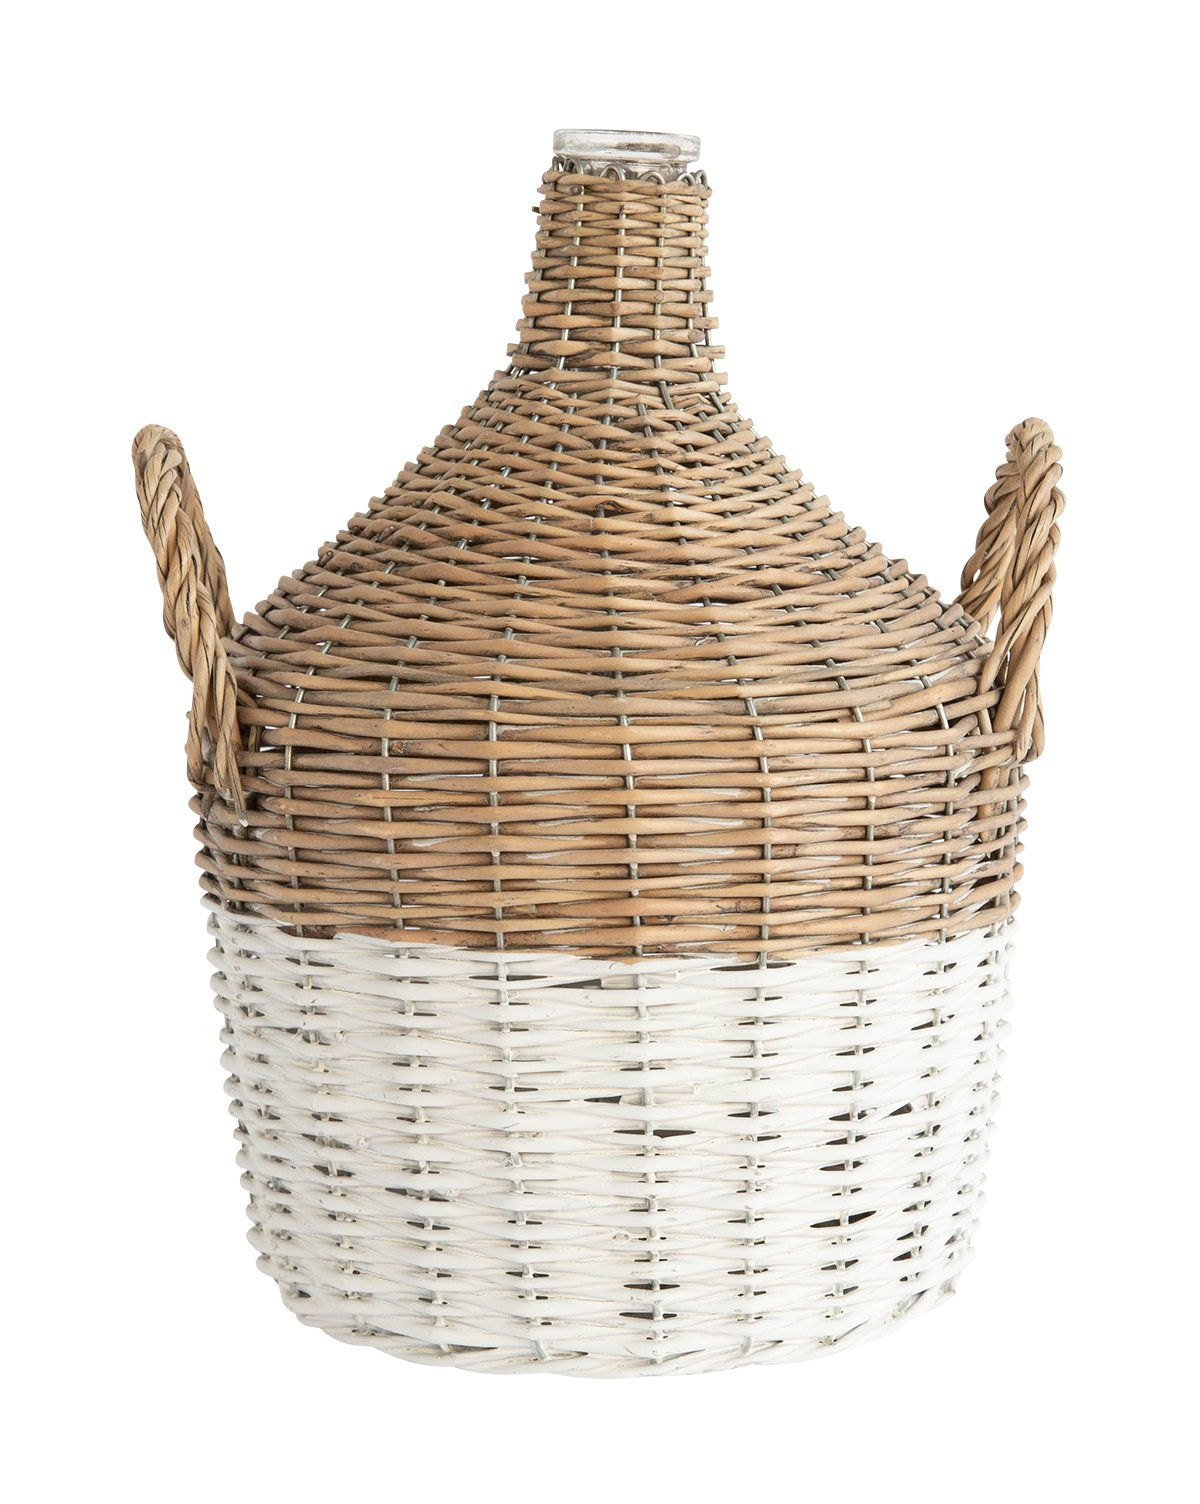 Dipped_Wicker_Demijohn_Bottle_1.jpg